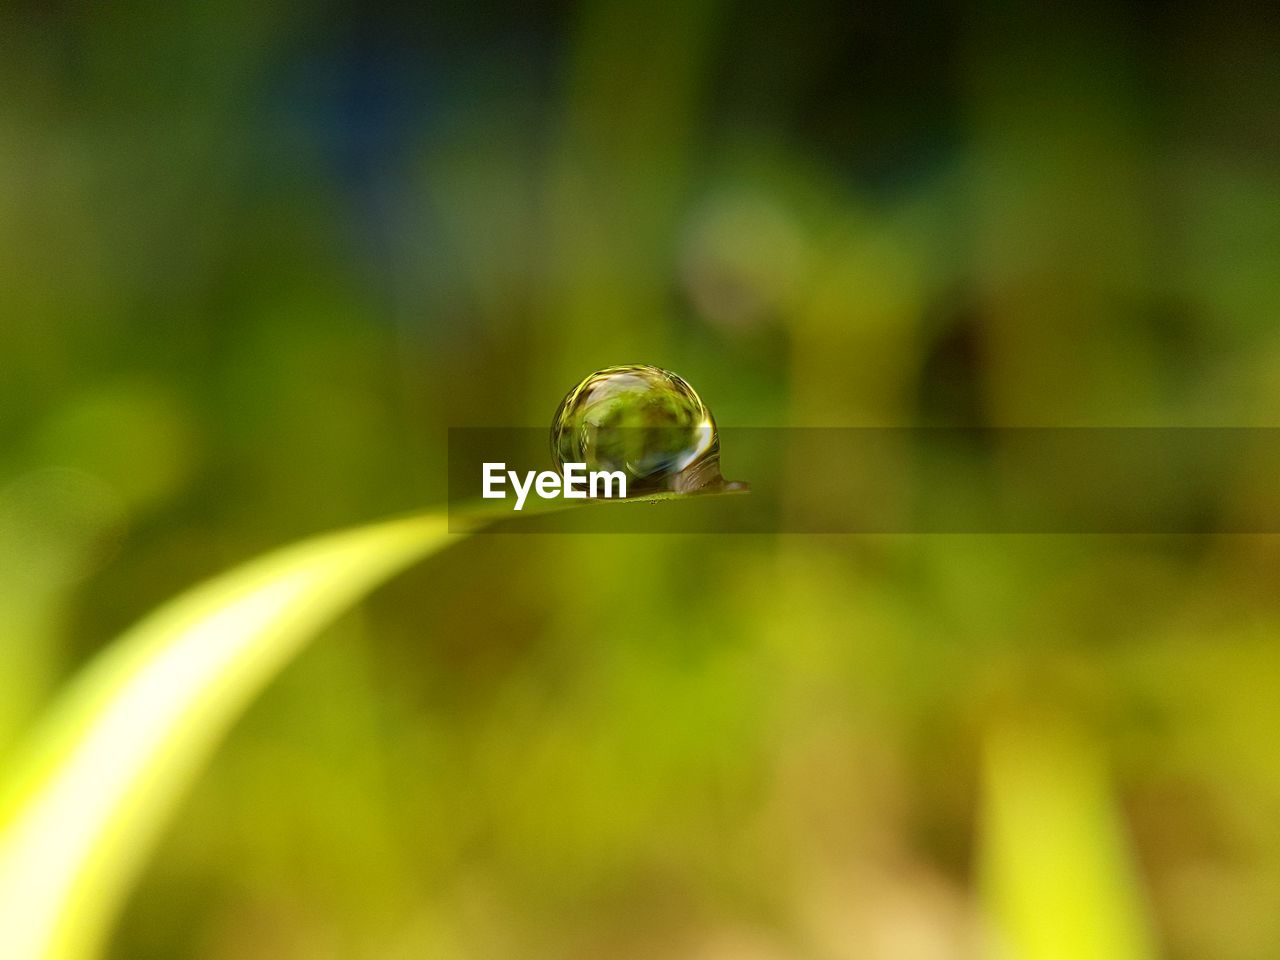 plant, close-up, green color, drop, vulnerability, selective focus, nature, growth, no people, focus on foreground, fragility, water, day, beauty in nature, plant part, leaf, outdoors, sphere, freshness, purity, blade of grass, dew, raindrop